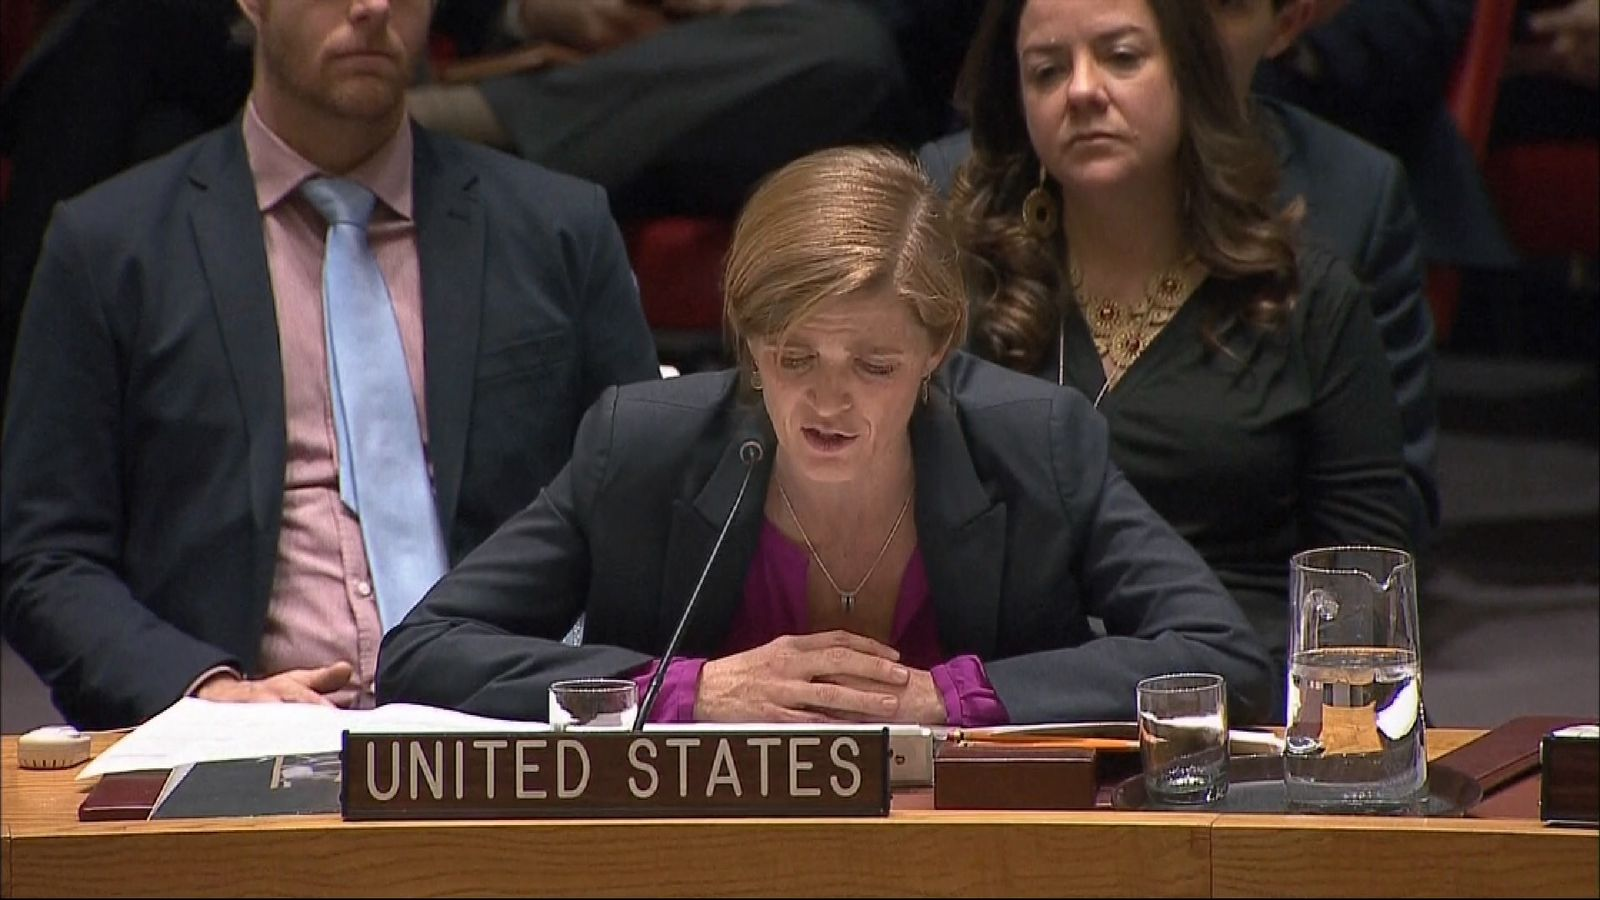 US ambassador to the UN, Samantha Power